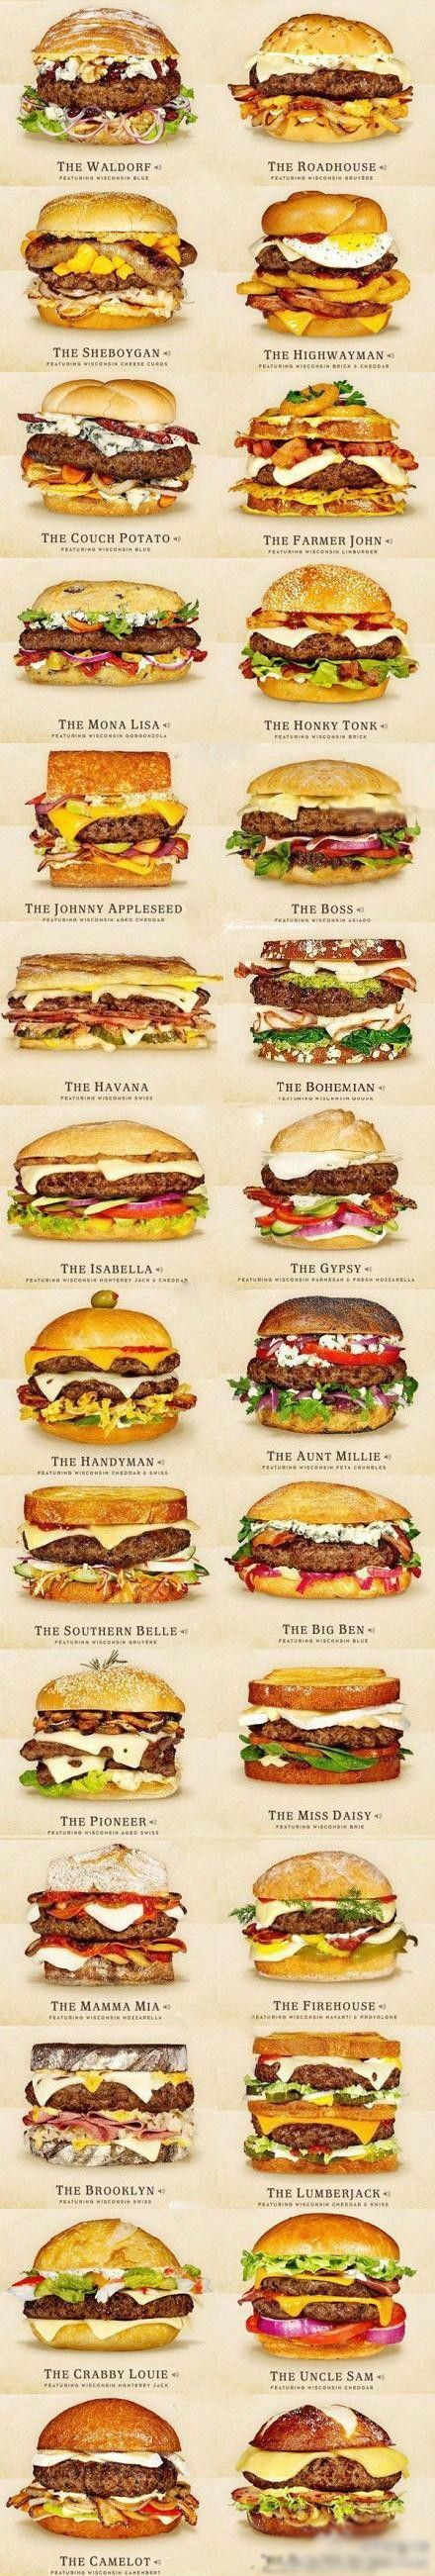 Burgers, burgers everywhere!